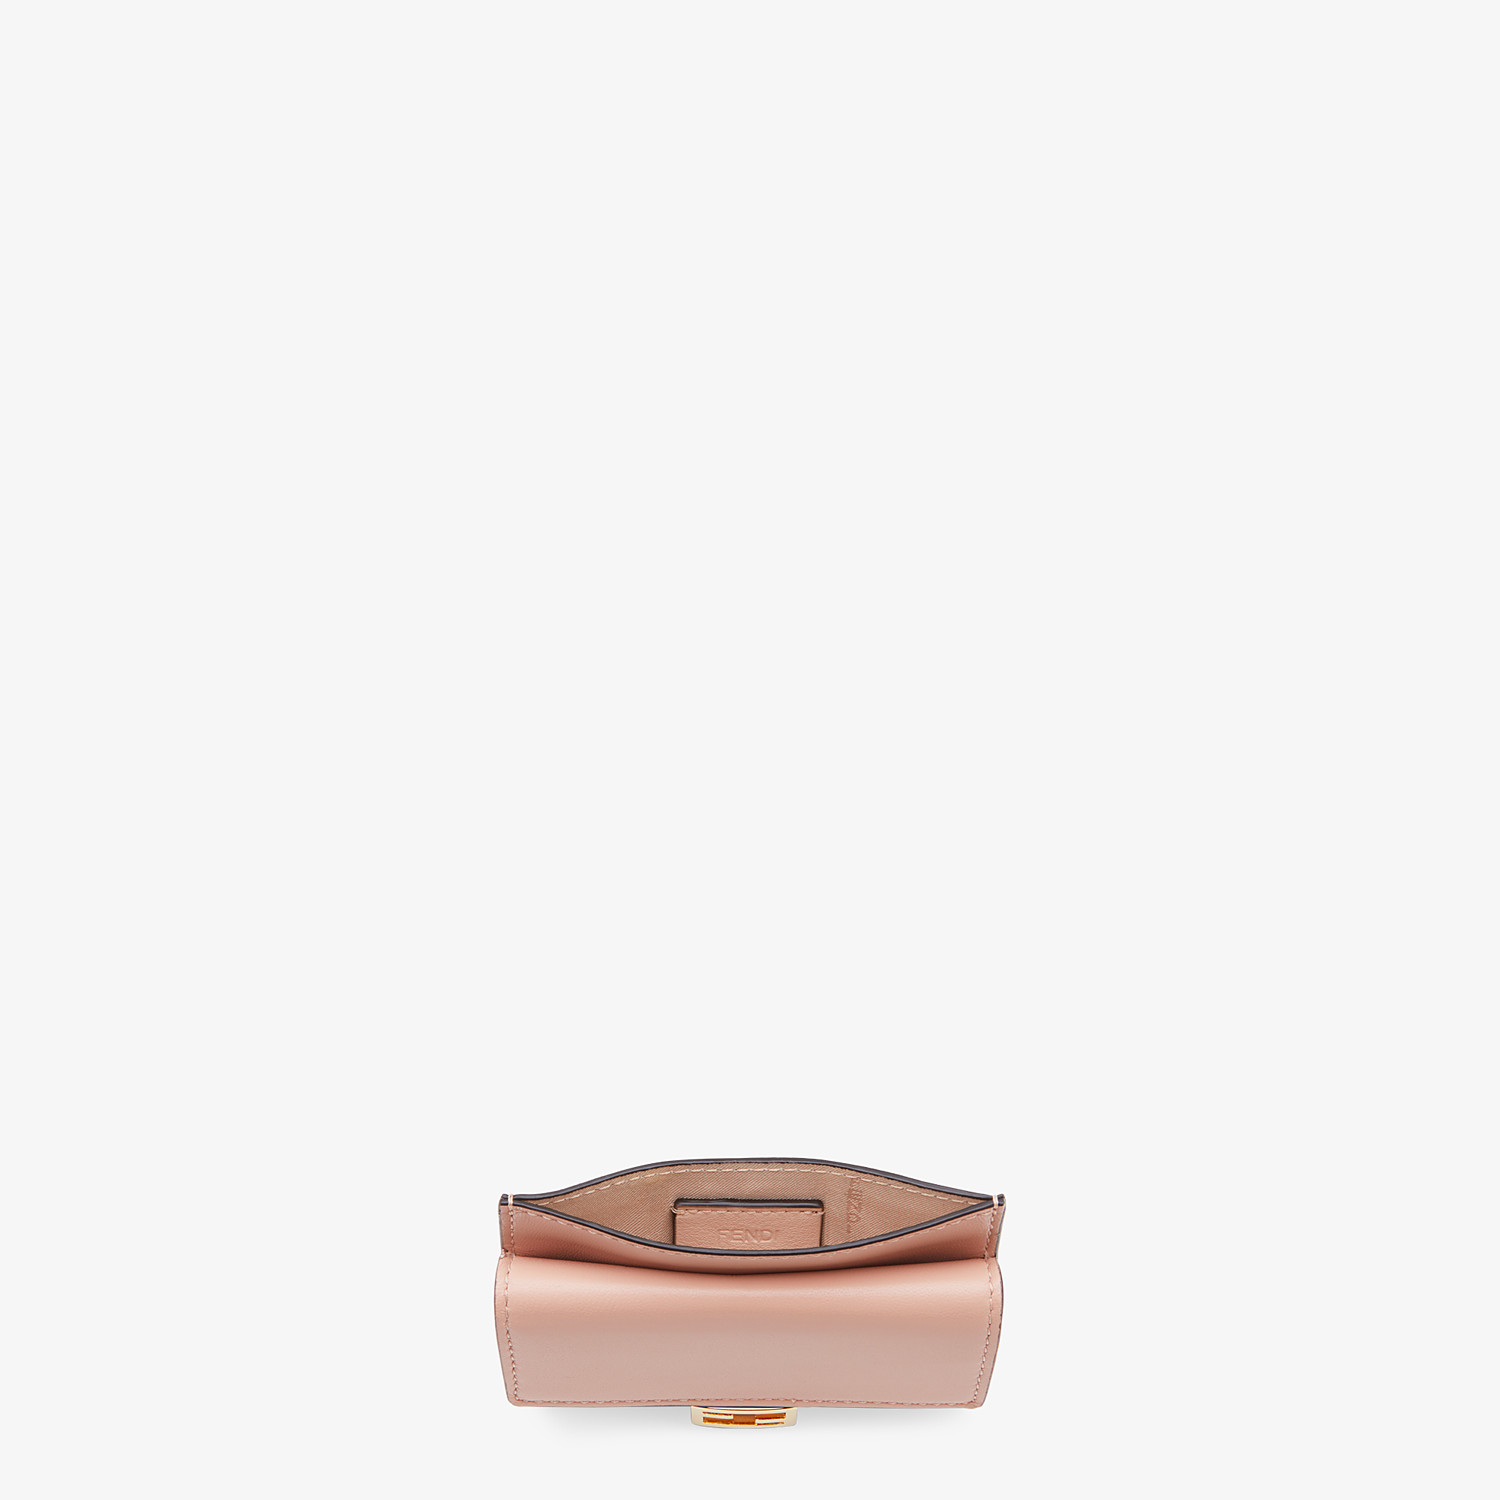 FENDI CARD HOLDER - Pink nappa leather card holder - view 4 detail